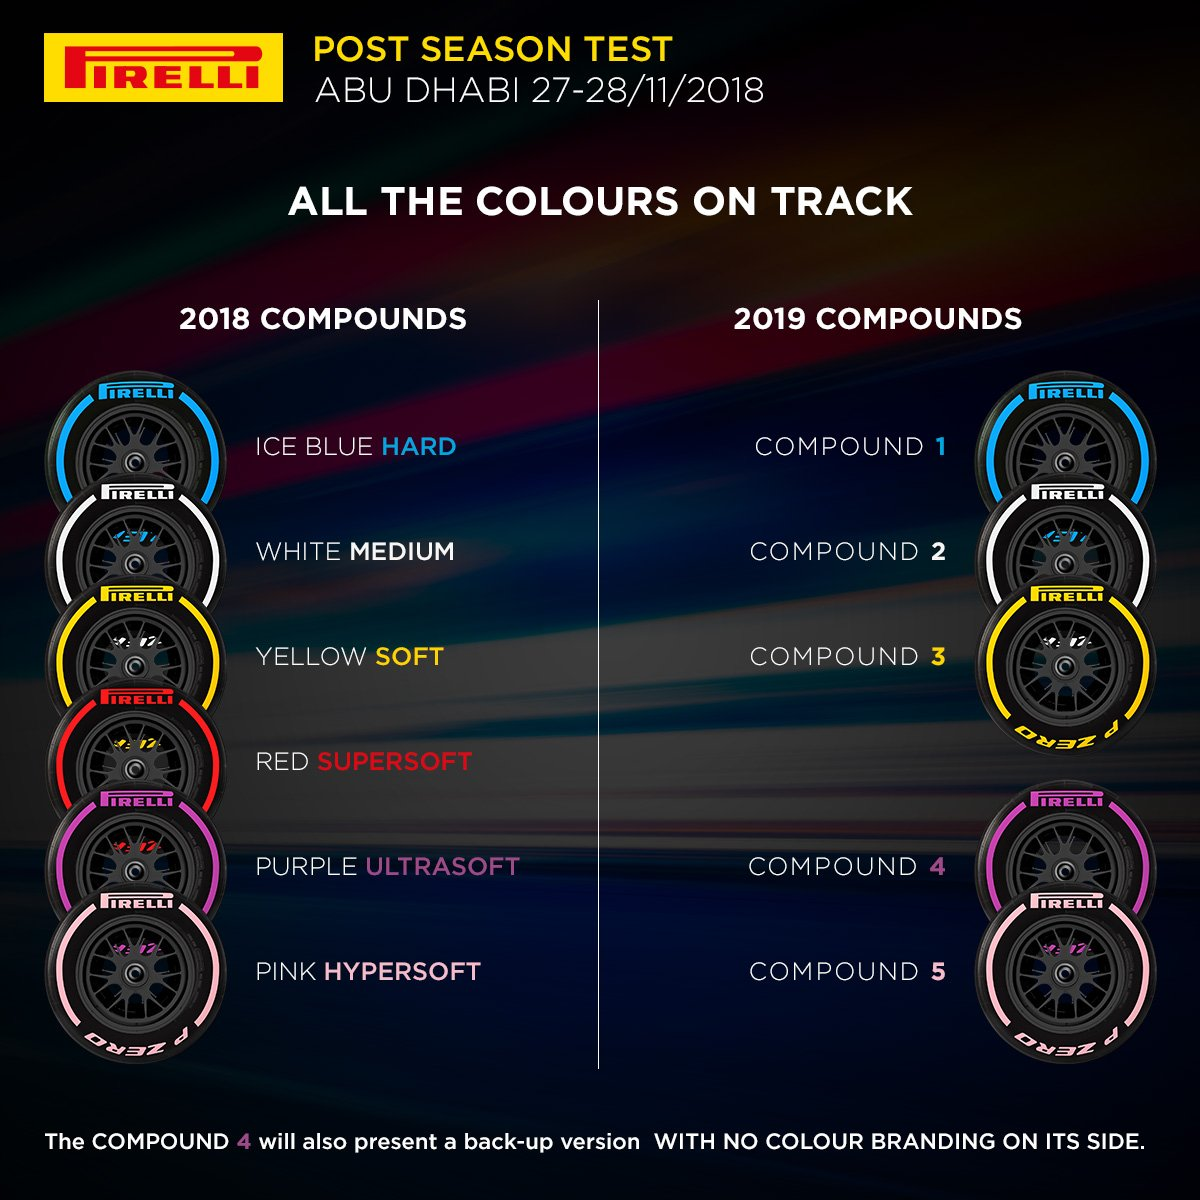 Here are the #Fit4F1 shoes available for the #AbuDhabiTest! #F1testing #Fit4F1testing